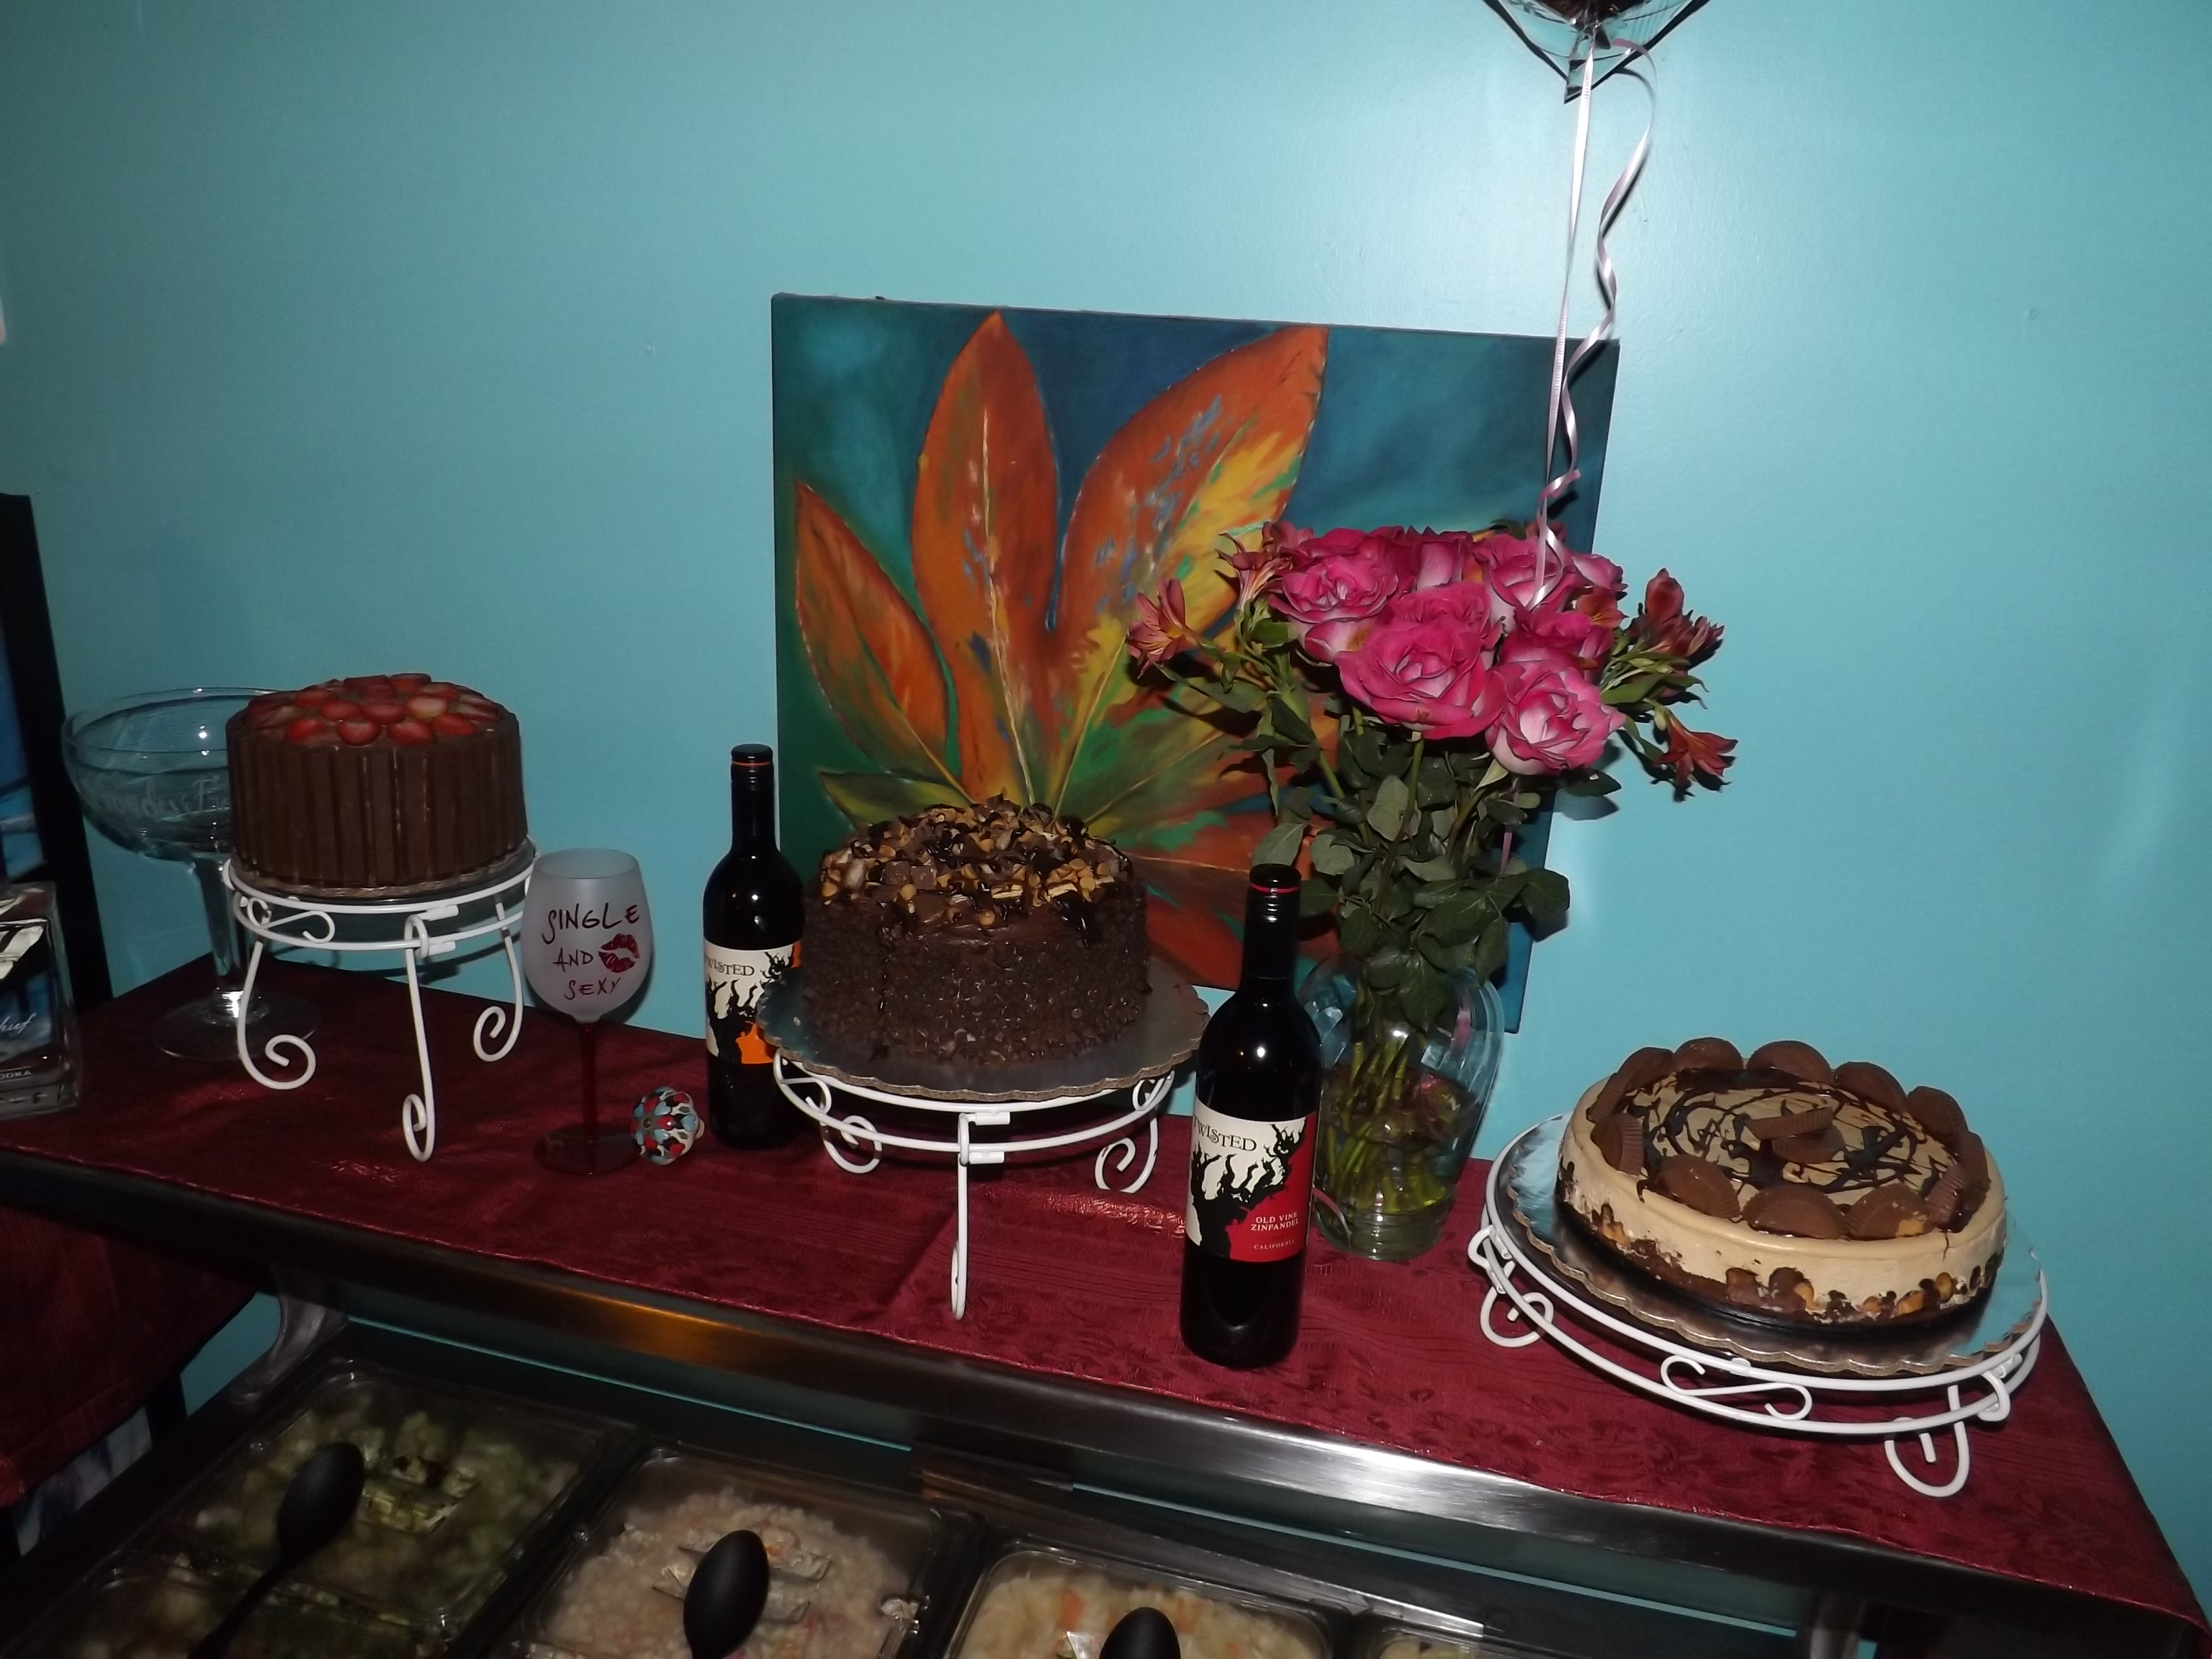 The Twisted Mama's Birthday Cakes